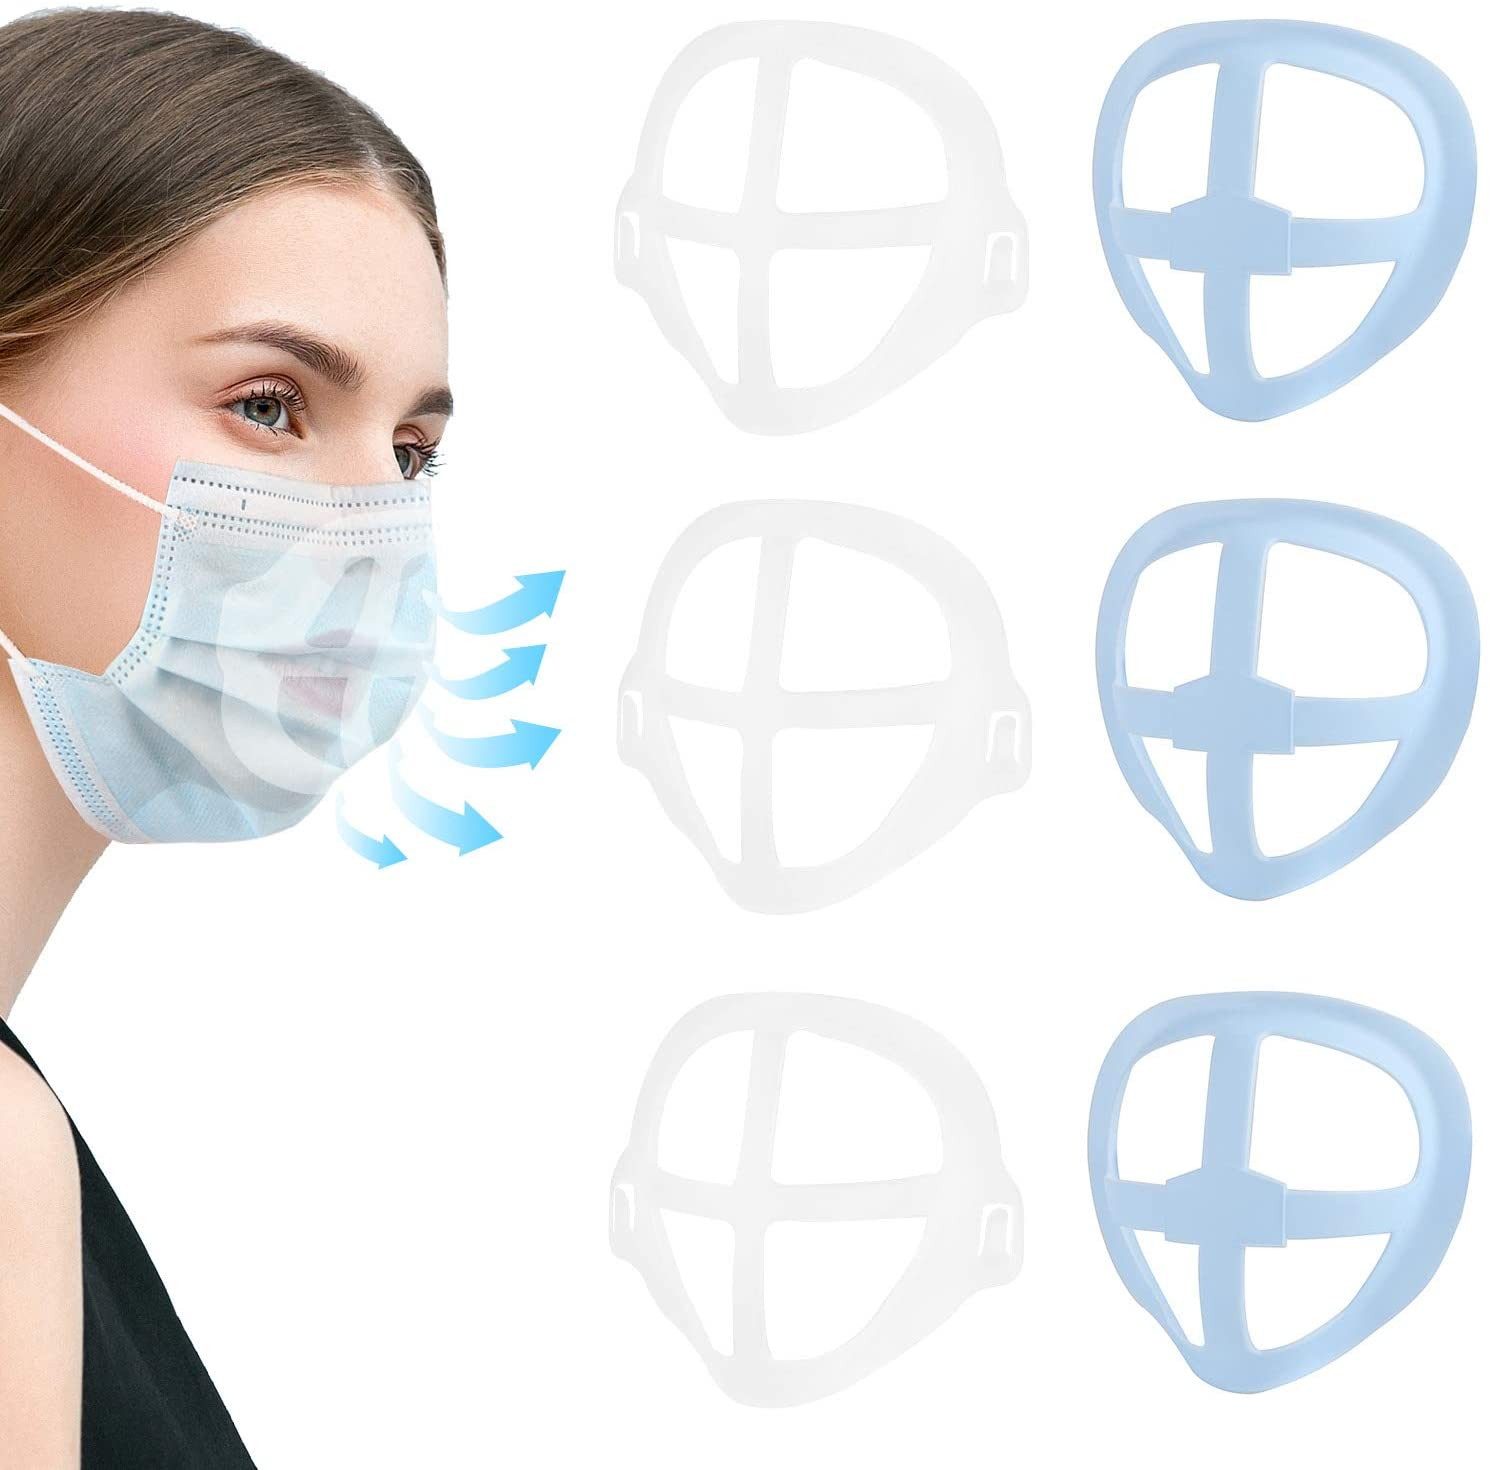 Face Mask Inner Support Frame Homemade Cloth Mask Cool Silicone Bracket More Space for Comfortable Breathing Washable Reusable, 3pcs Clear (6)